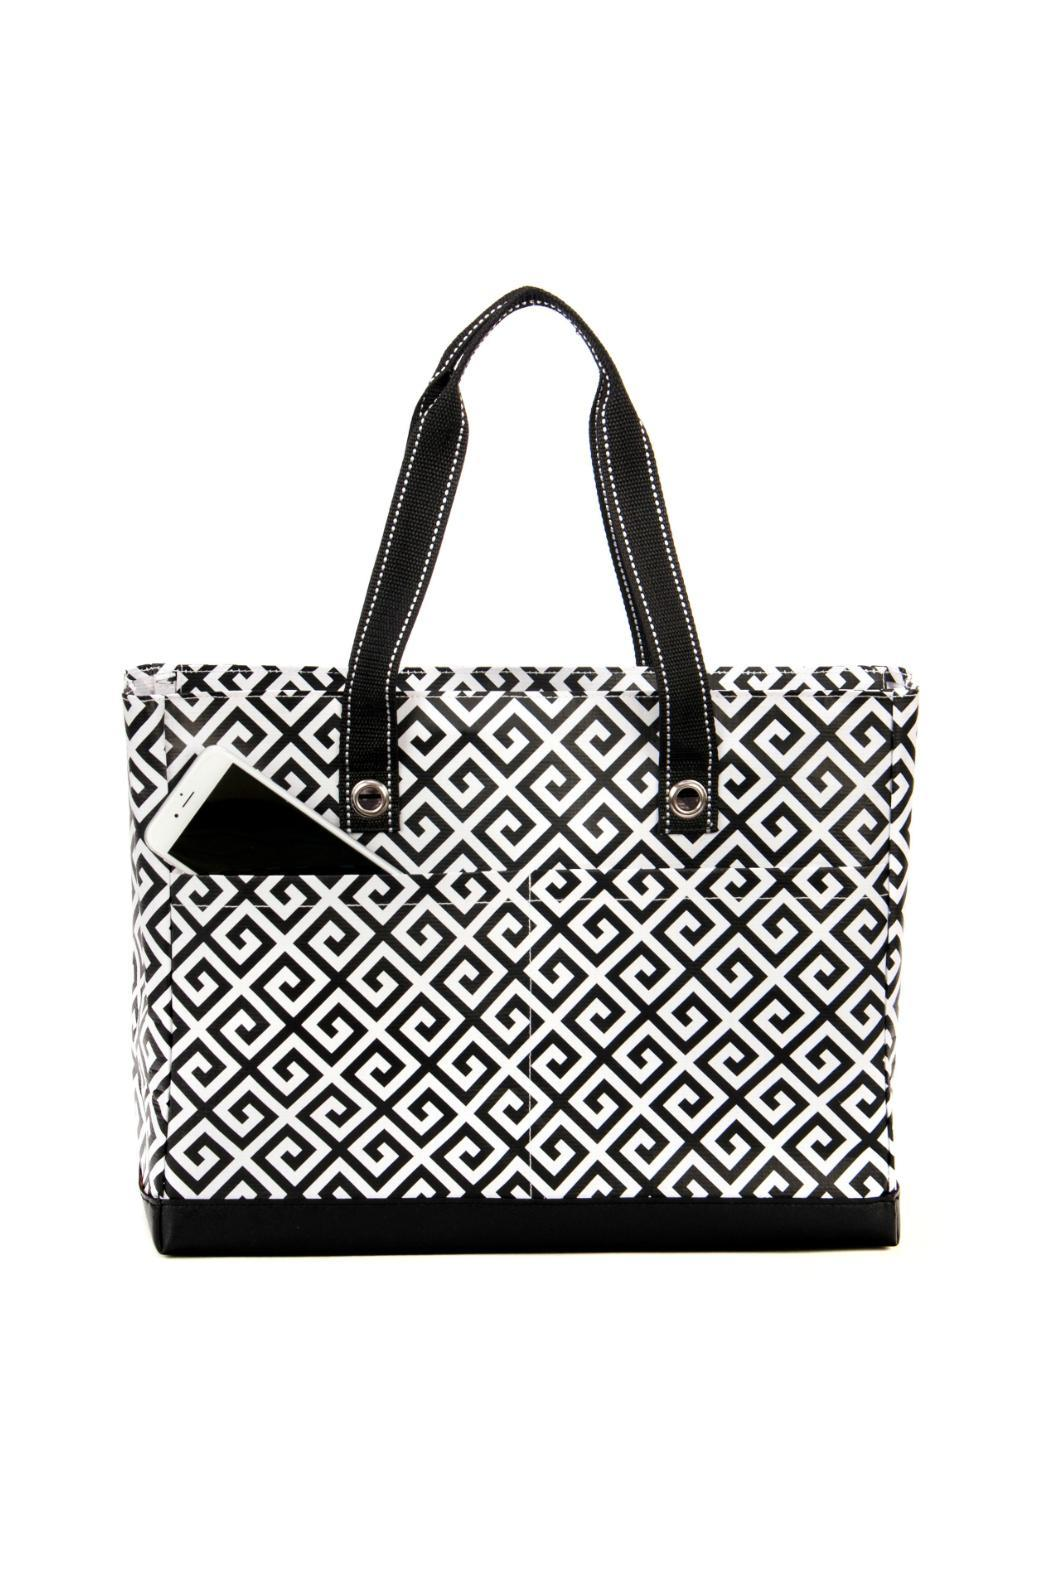 Scout Uptown Girl Multi Pocket Tote From Virginia By Mary Barnetts Frnd Cosmetics Set Side Cropped Image